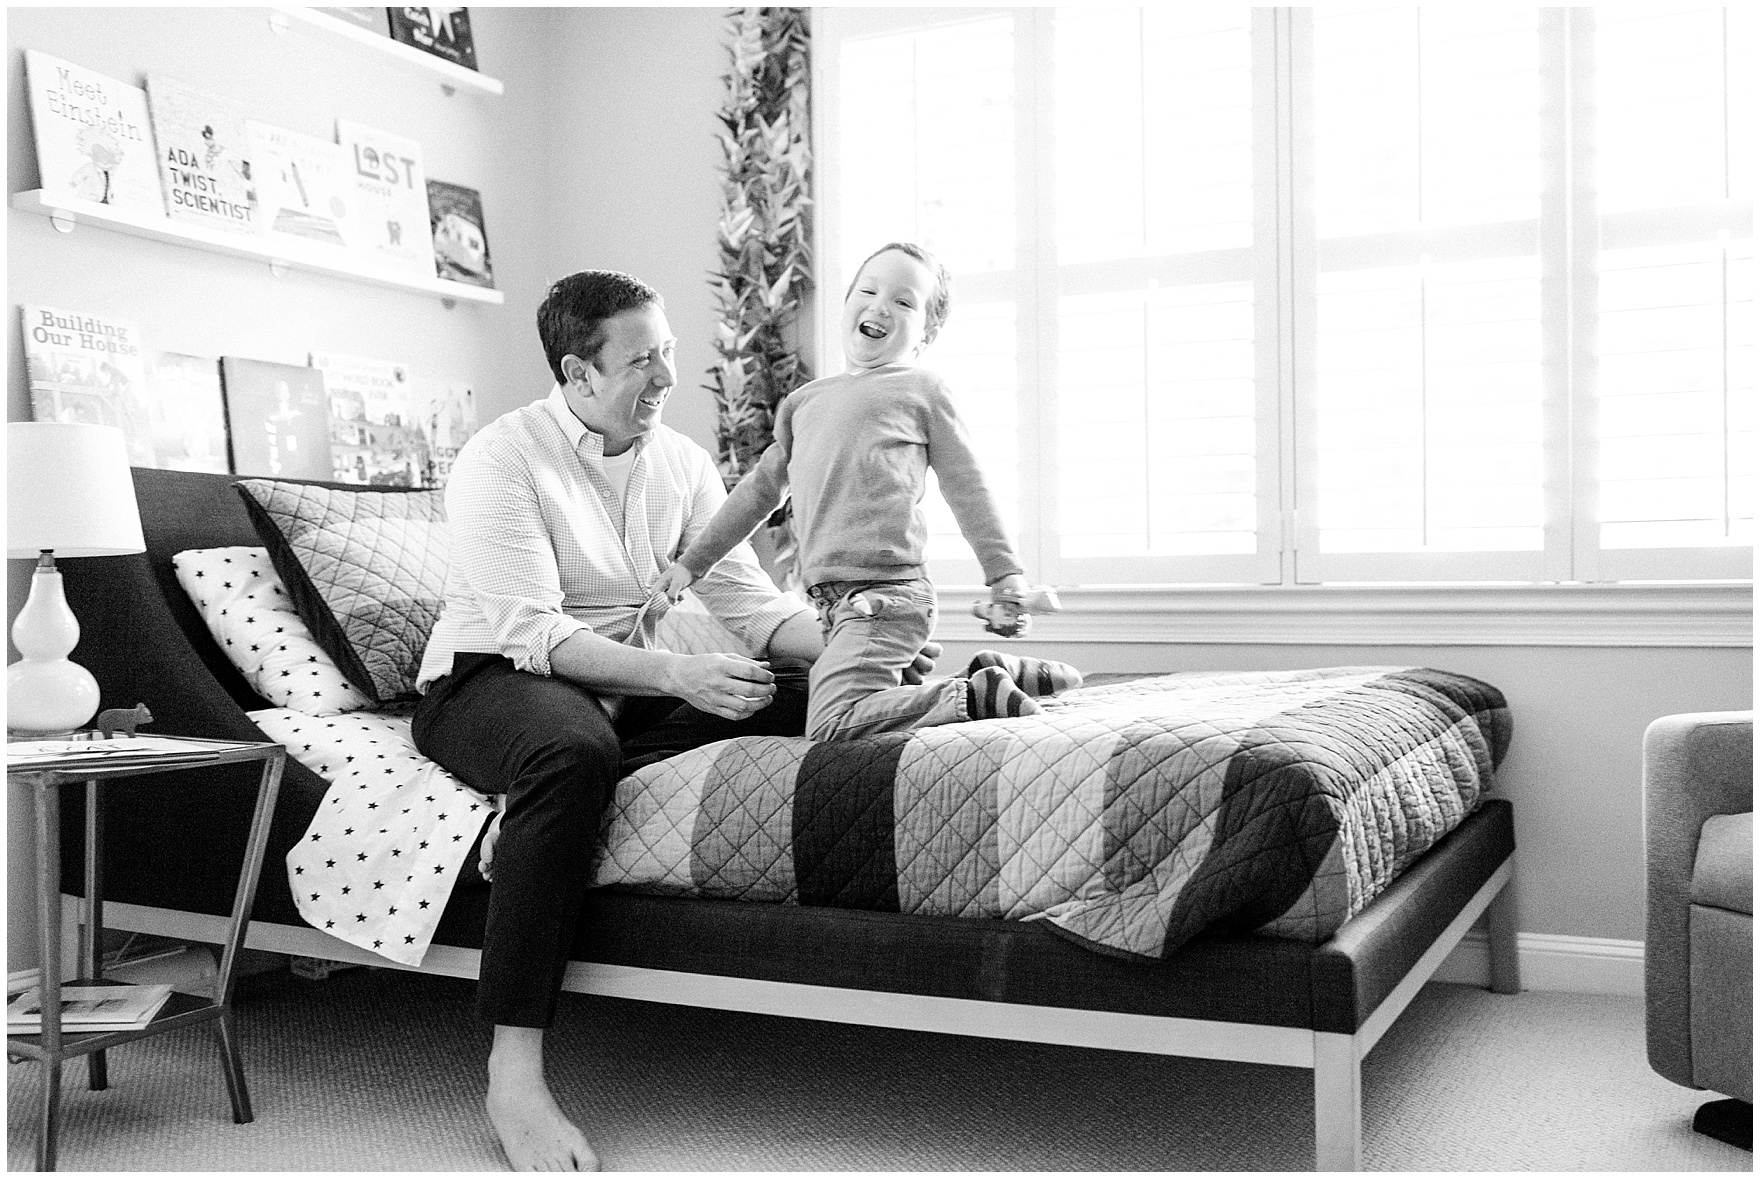 A boy plays and laughs with his dad during an at home family session.